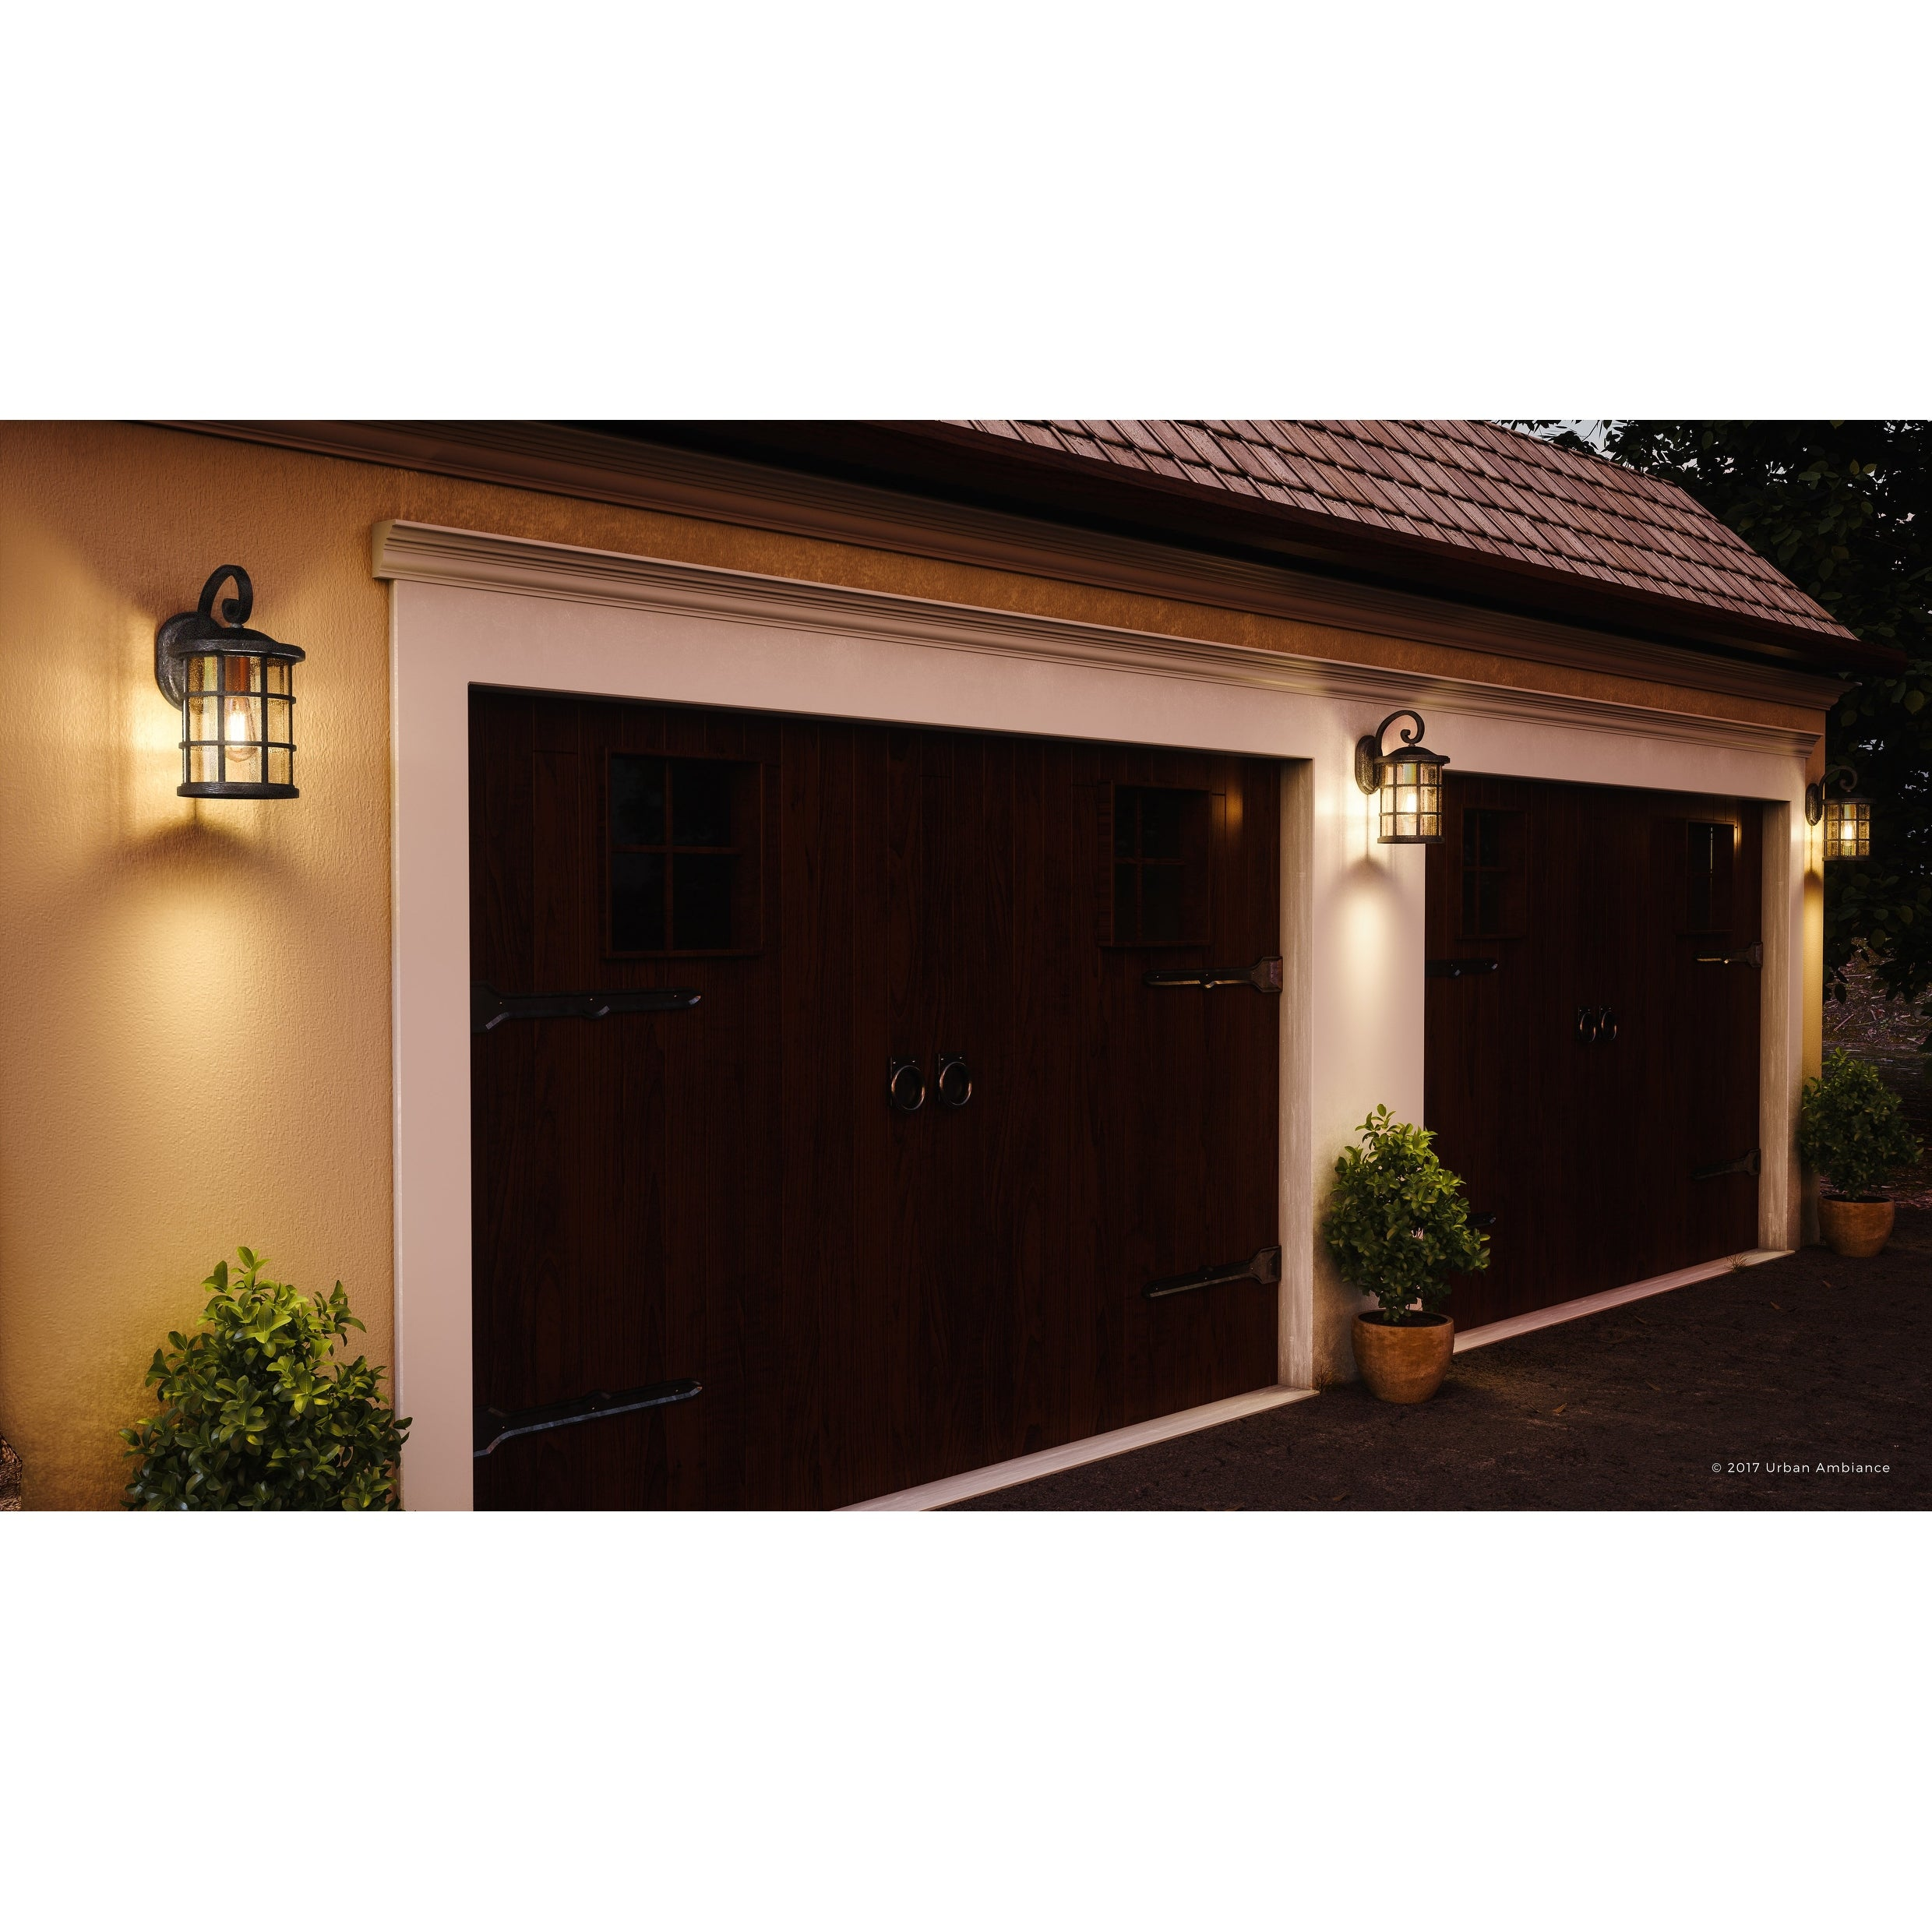 Luxury Craftsman Outdoor Wall Light 17 75 H X 10 W With Tudor Style Wrought Iron Design Natural Black Finish Overstock 19477914